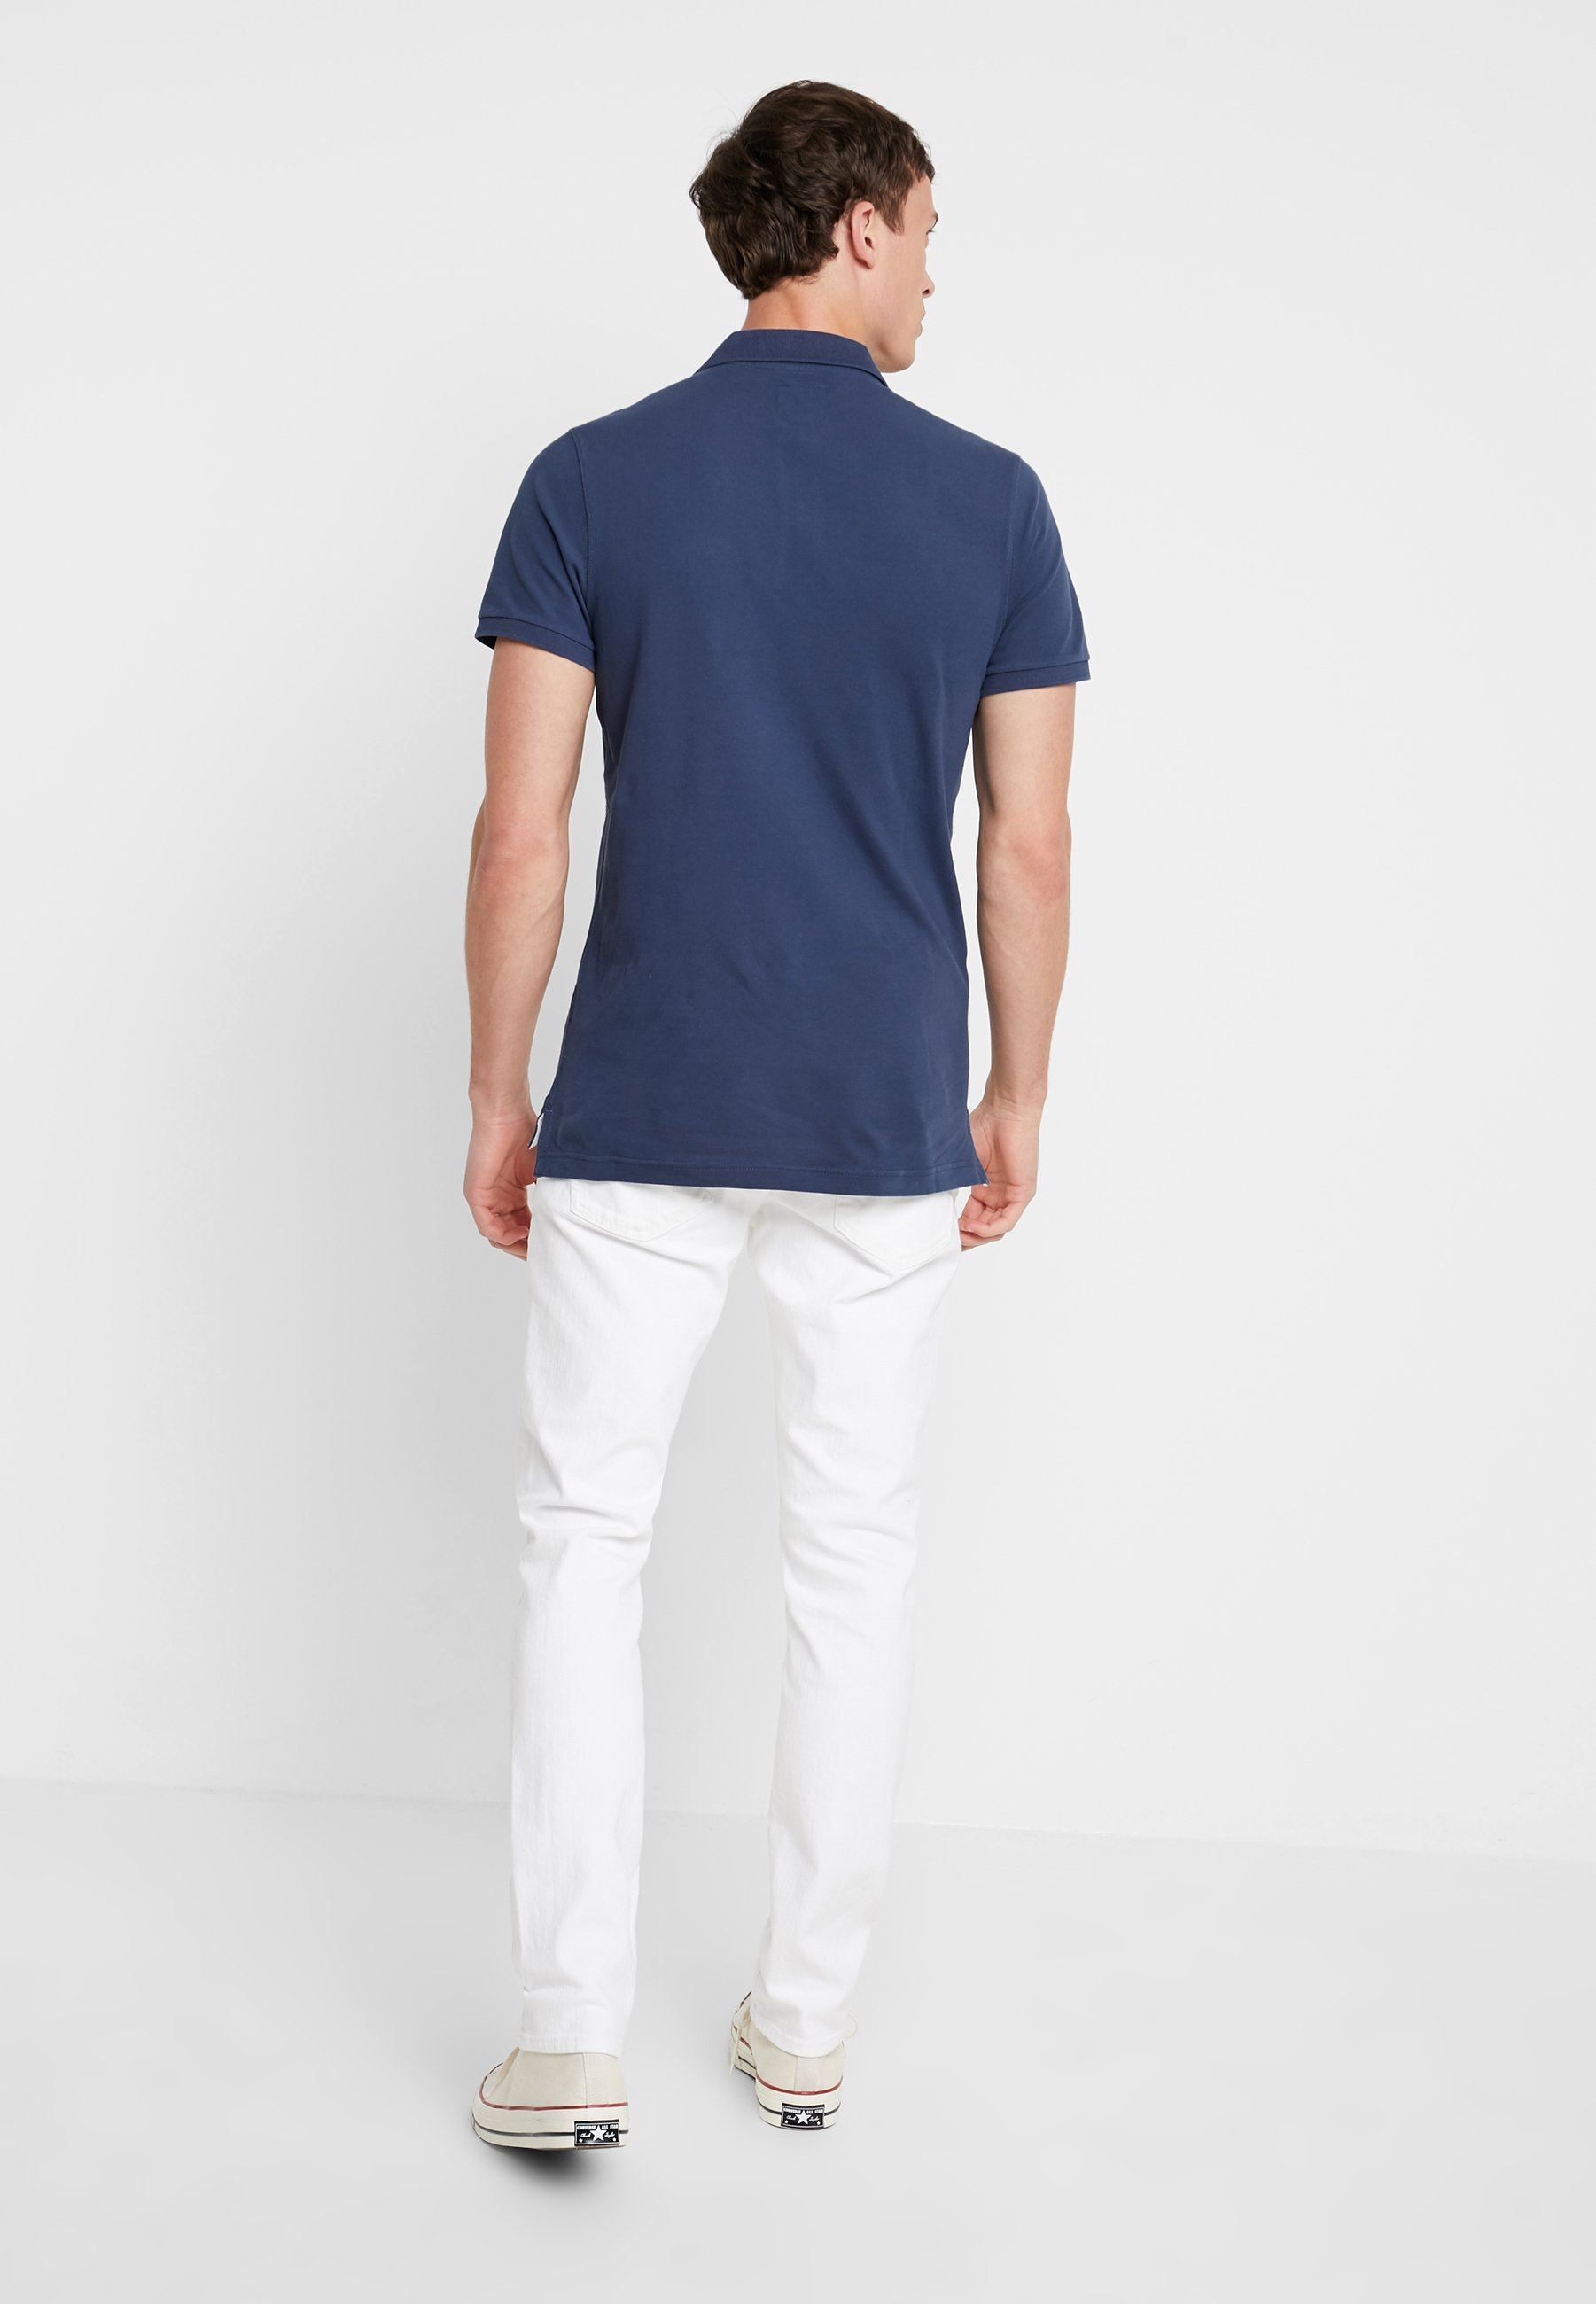 Fitch Fitch SlimWhite Abercrombieamp; Jean Fitch Jean Abercrombieamp; SlimWhite Abercrombieamp; MUqVpSzG